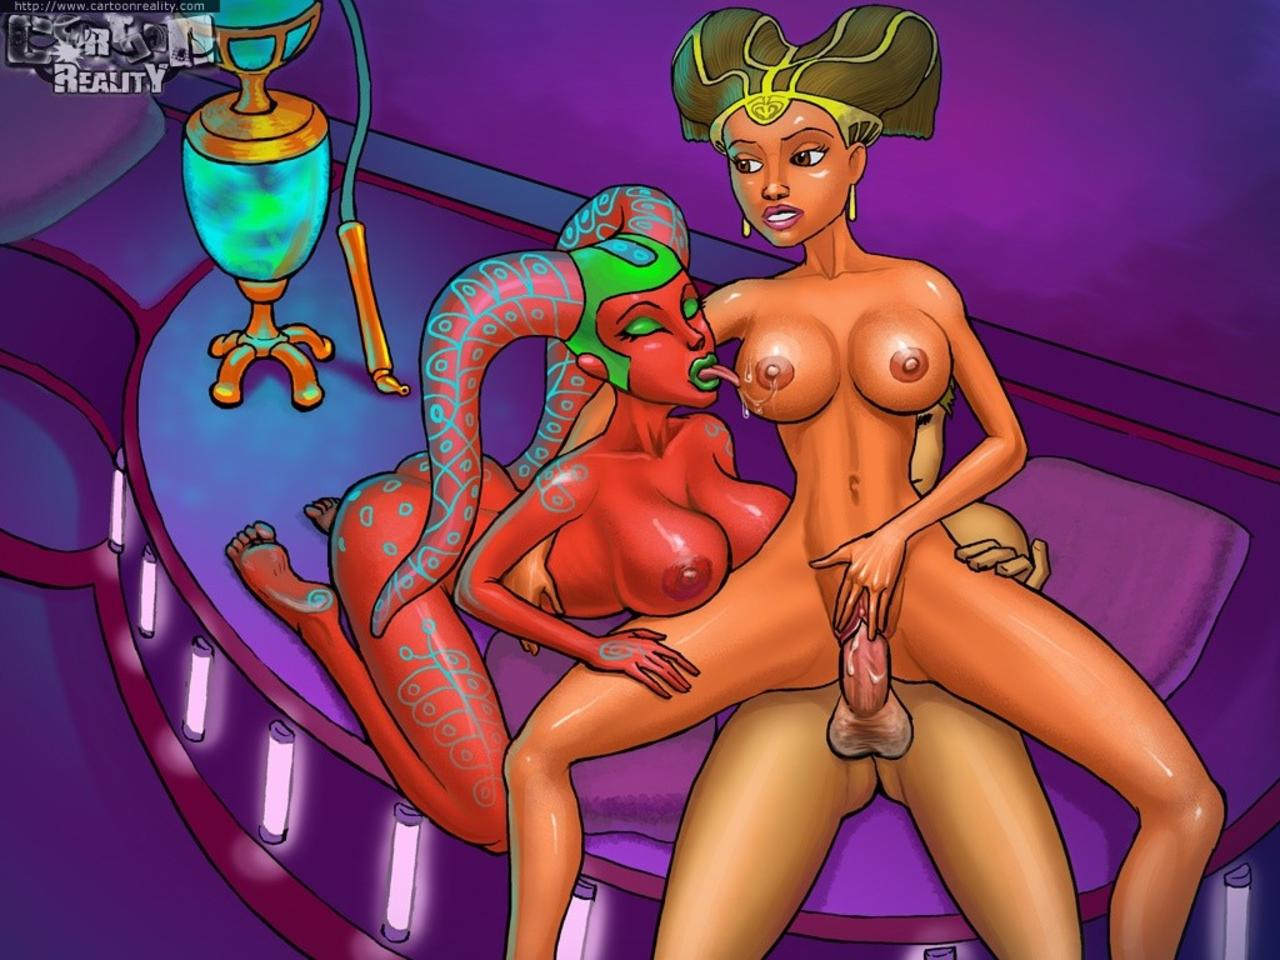 Starwars cartoon sex pic porn photos